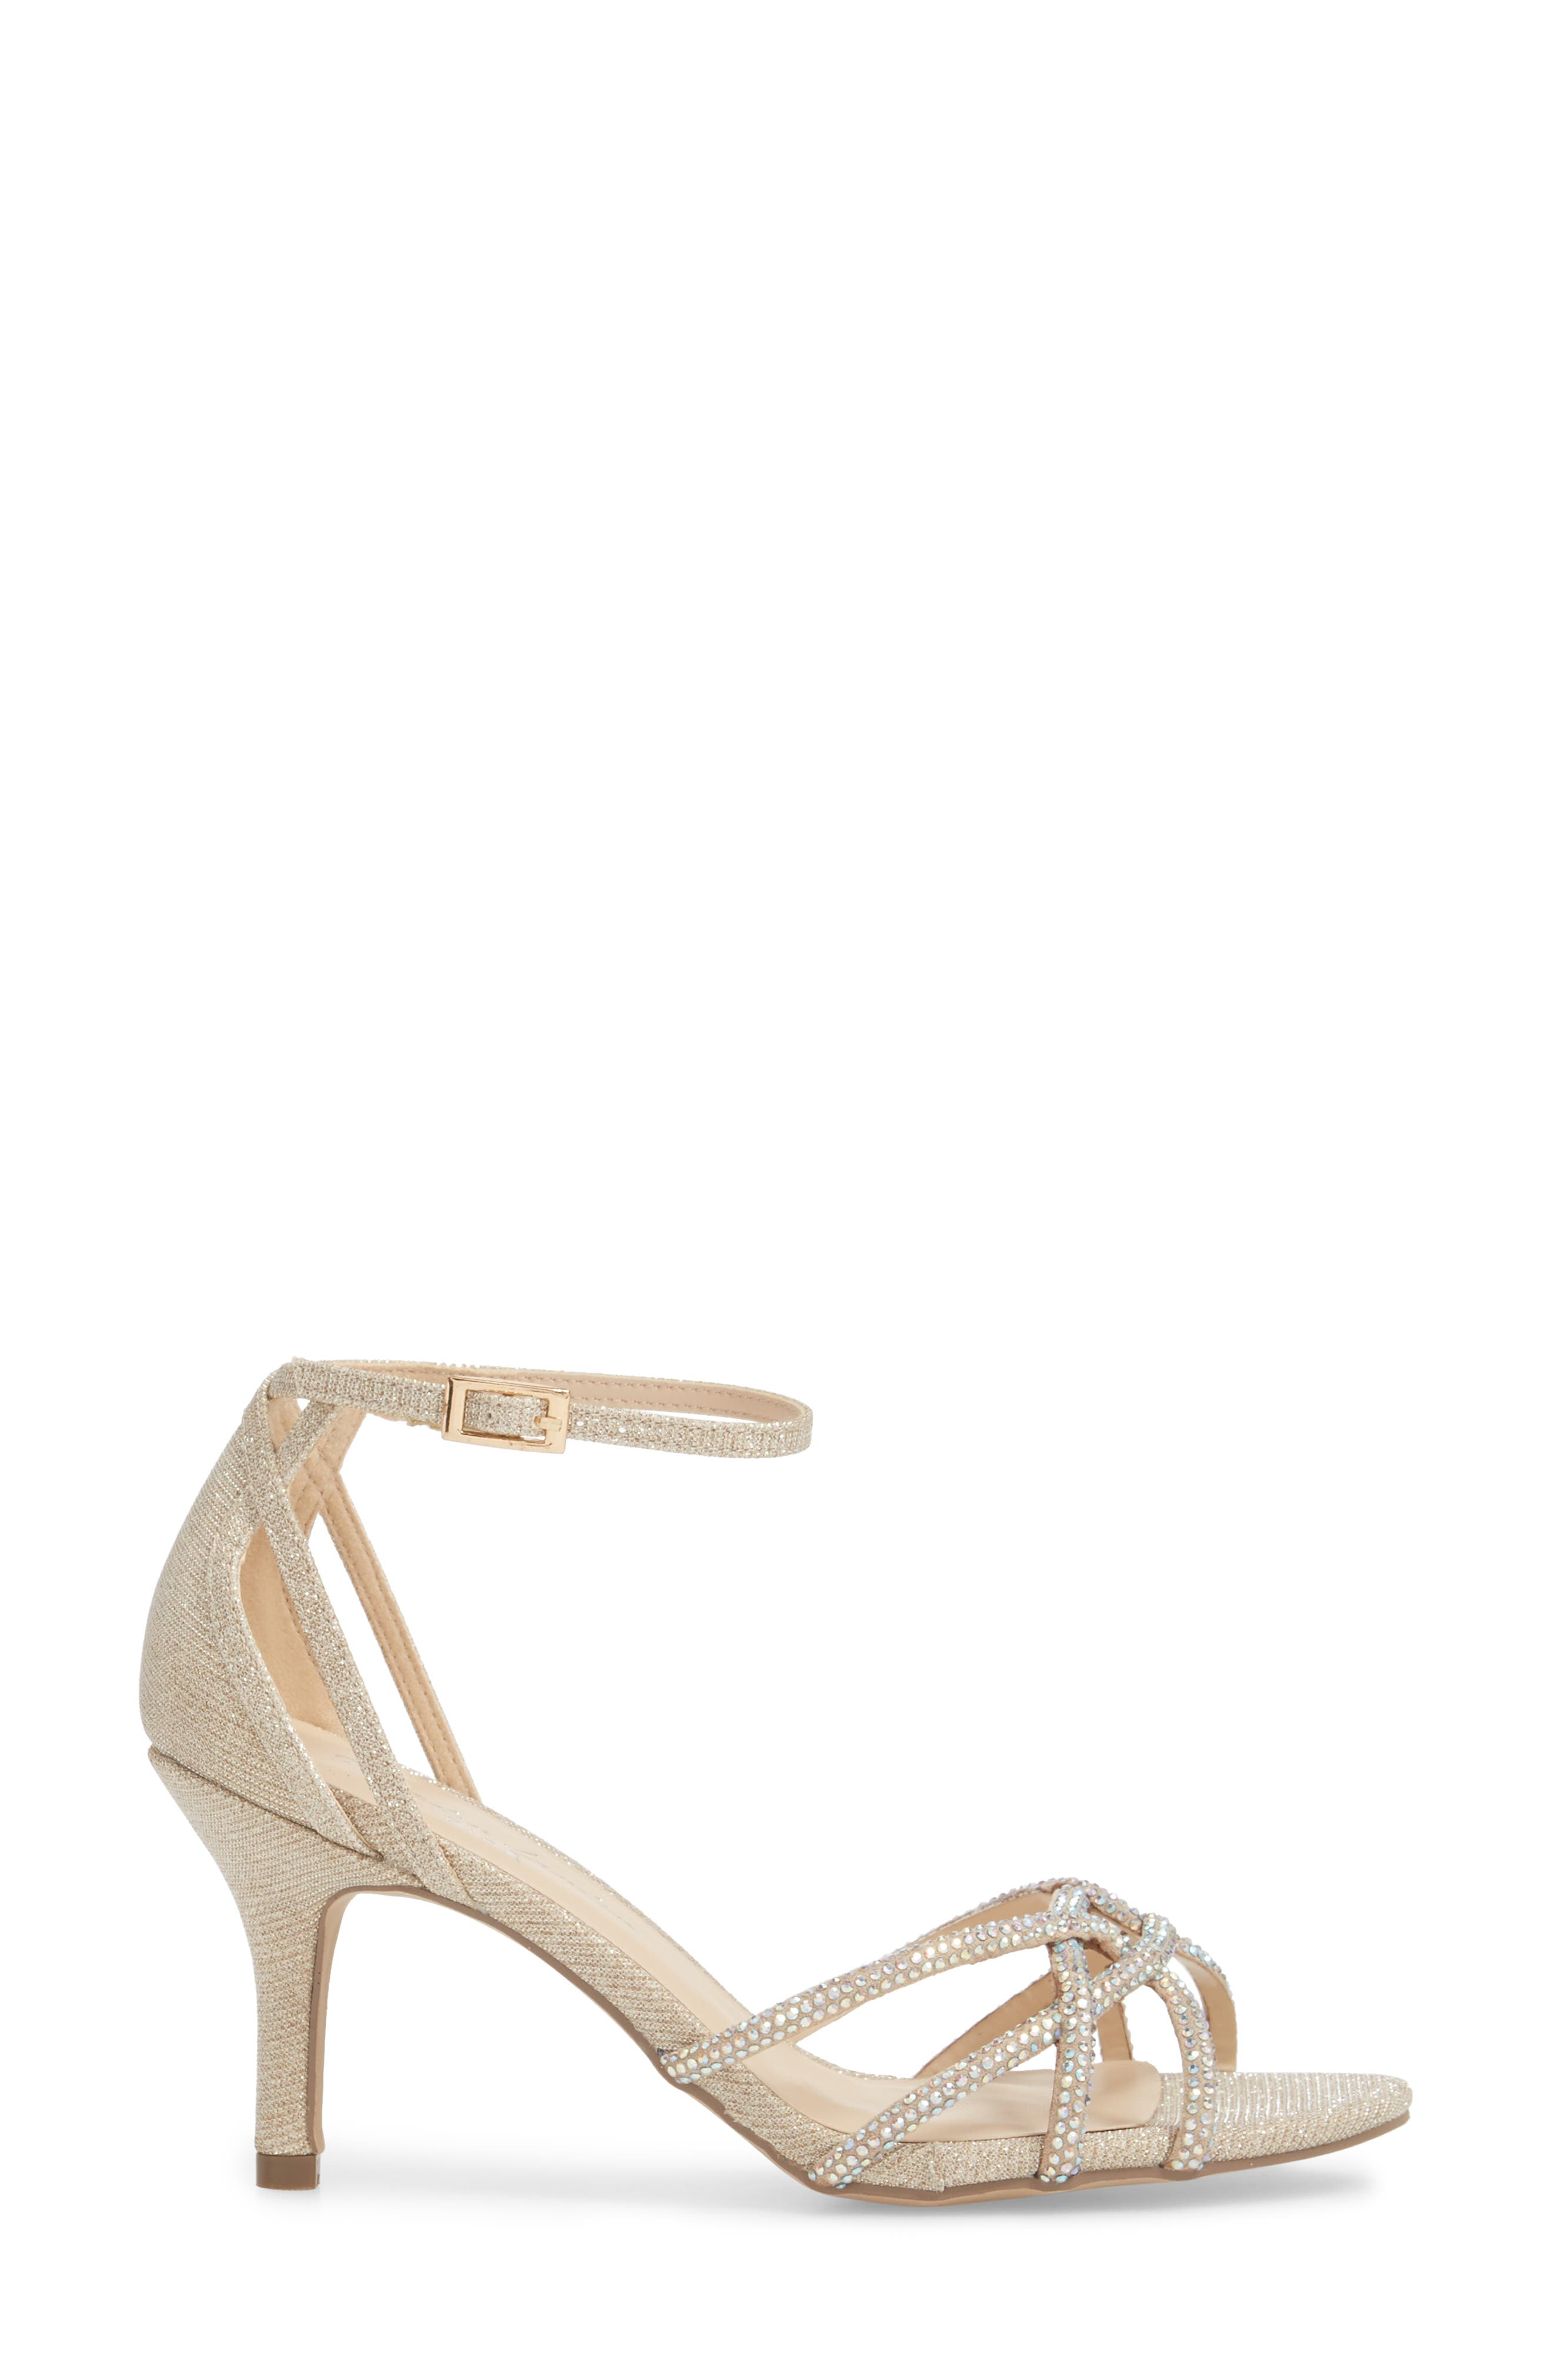 Majesty Sandal,                             Alternate thumbnail 3, color,                             Champagne Fabric